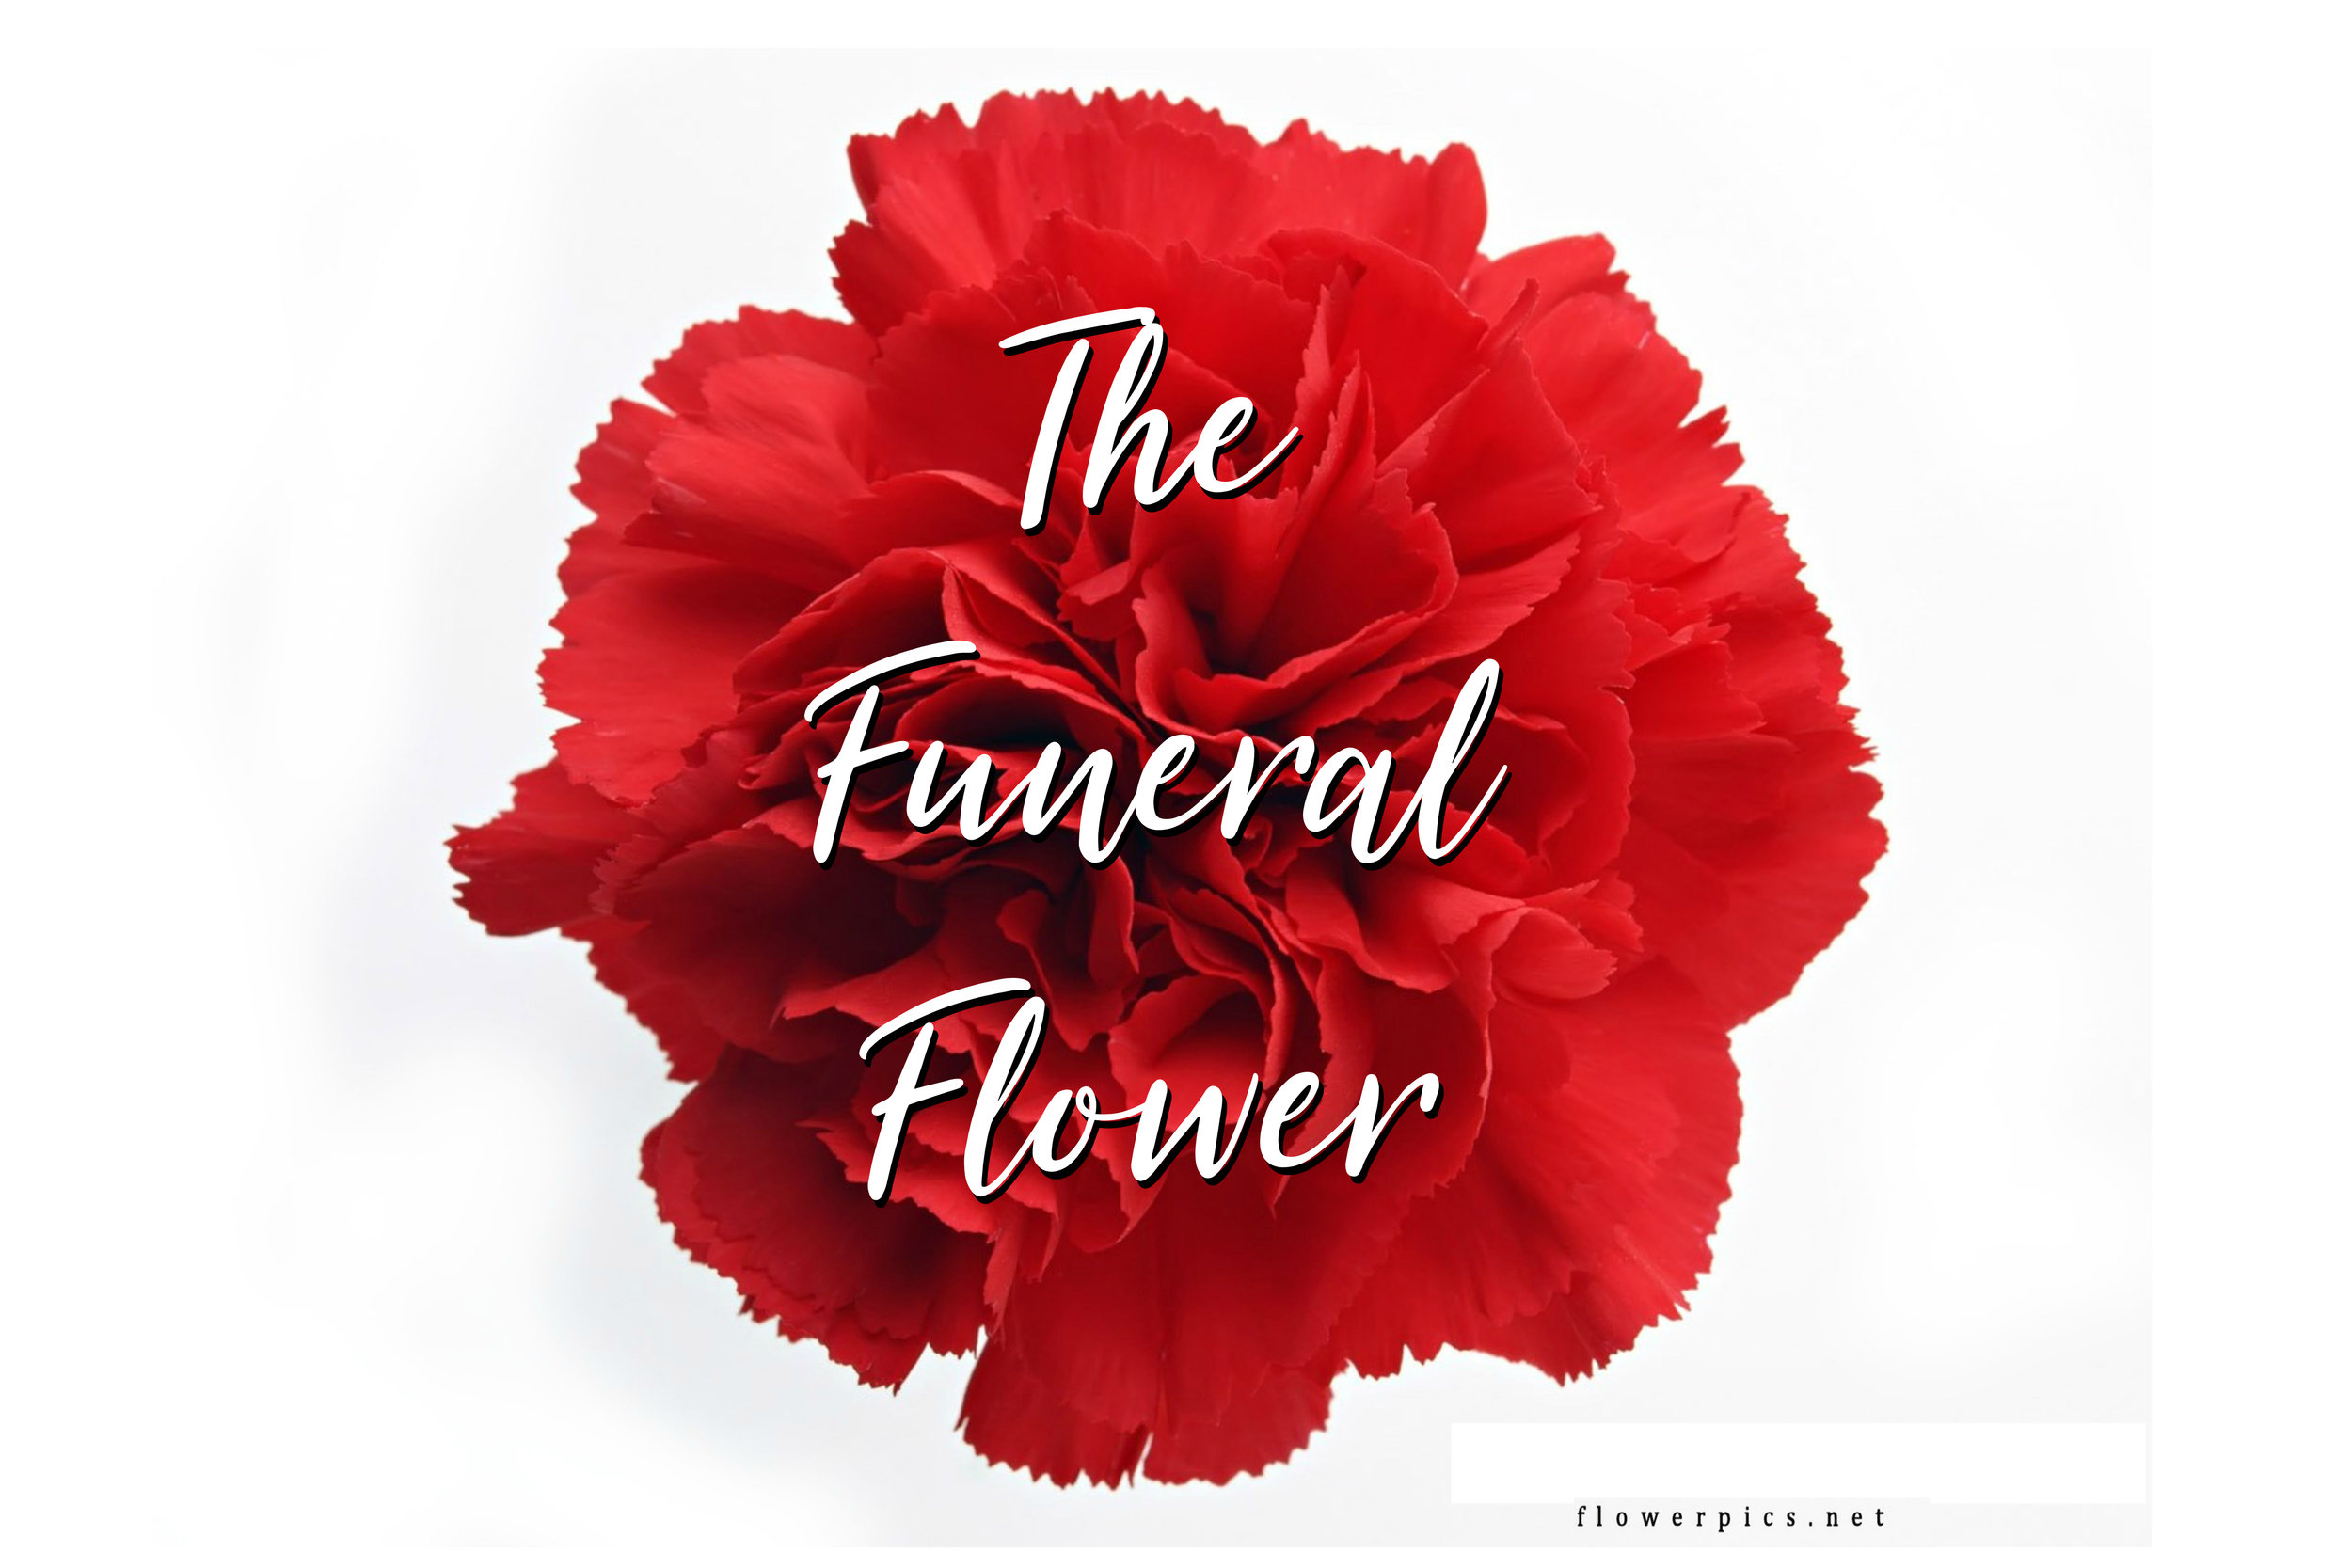 michelle_jester MAIN PAGE The Funeral Flower221.jpg